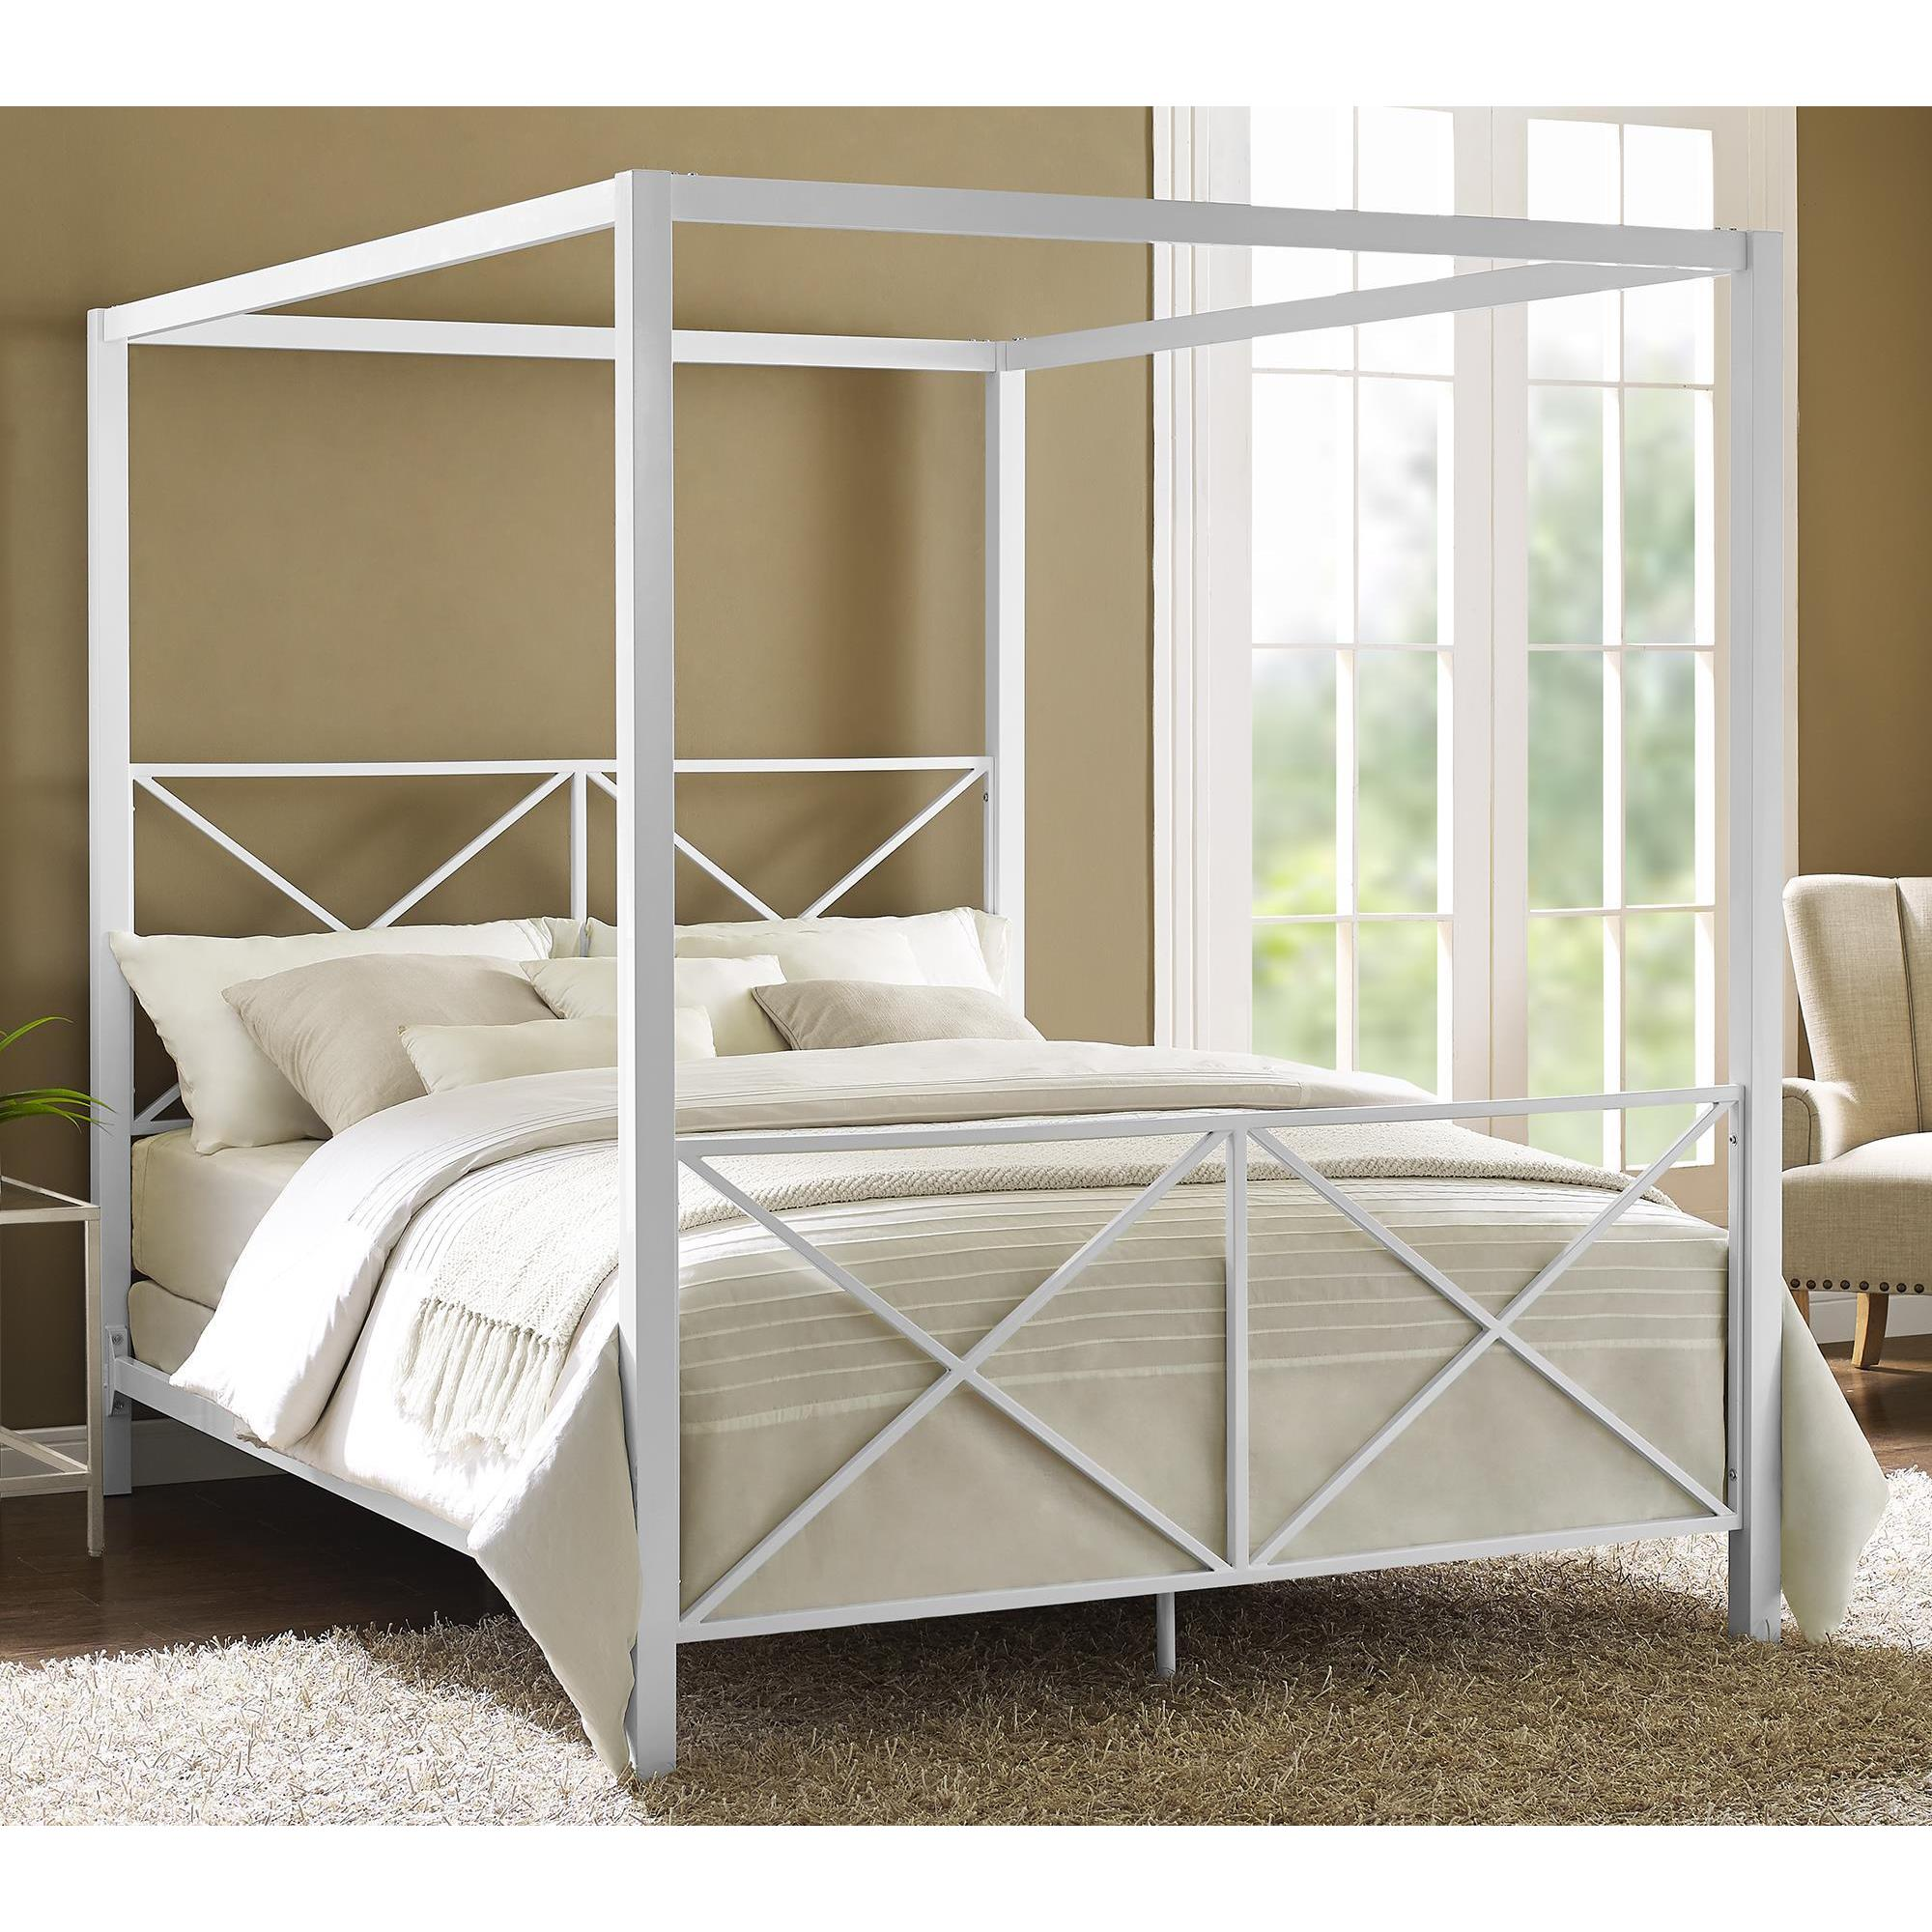 Shop Clay Alder Home Commodore White Canopy Queen Bed - Free ...